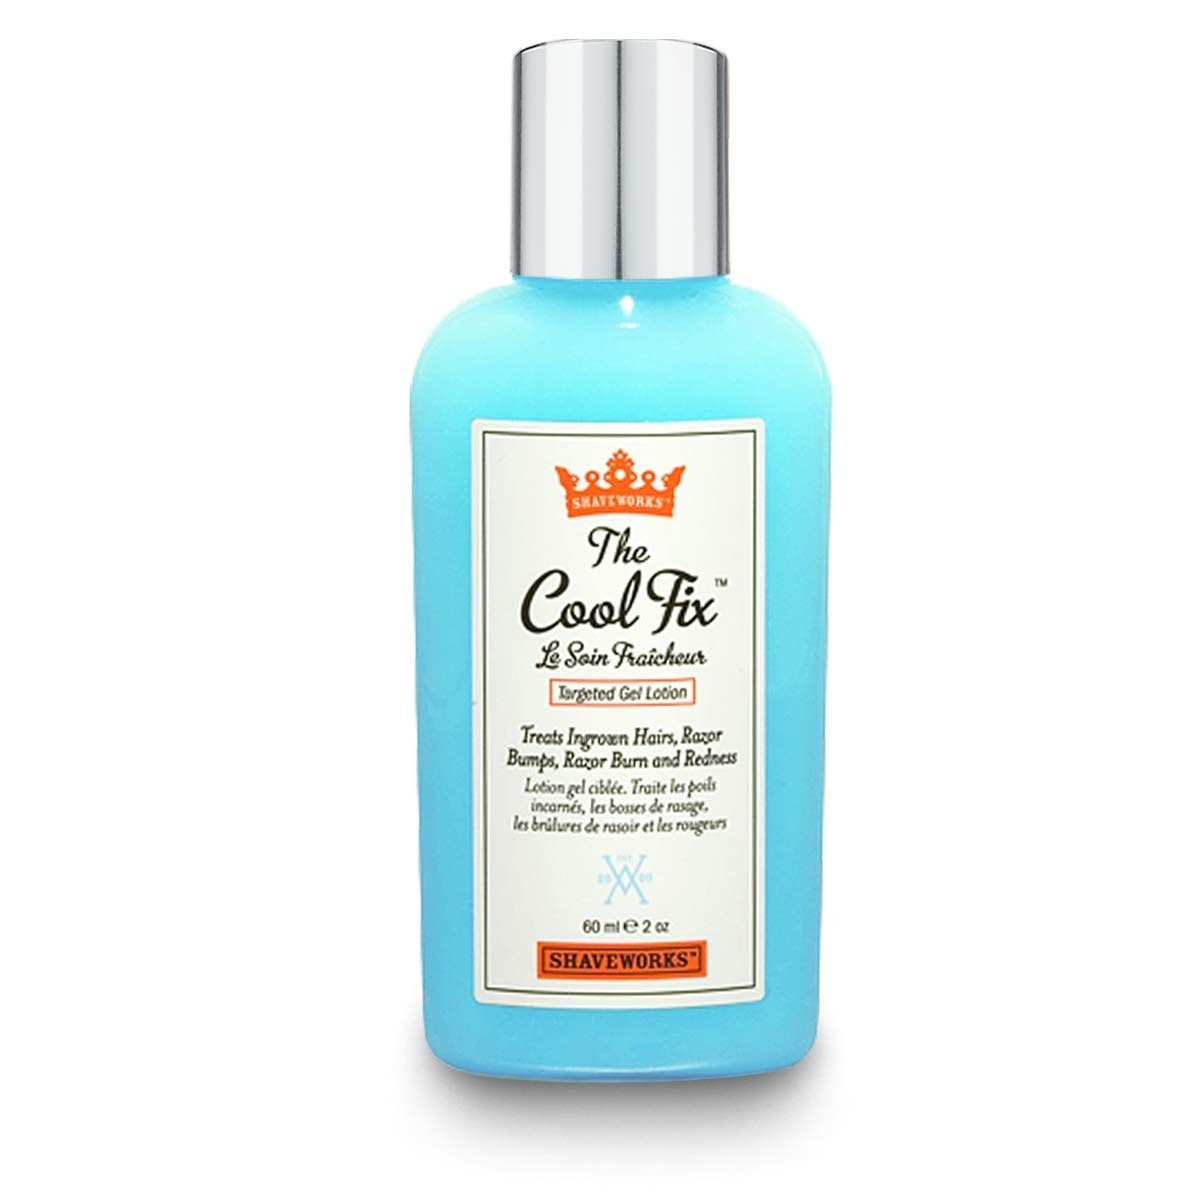 Shaveworks The Cool Fix, 2 Ounces